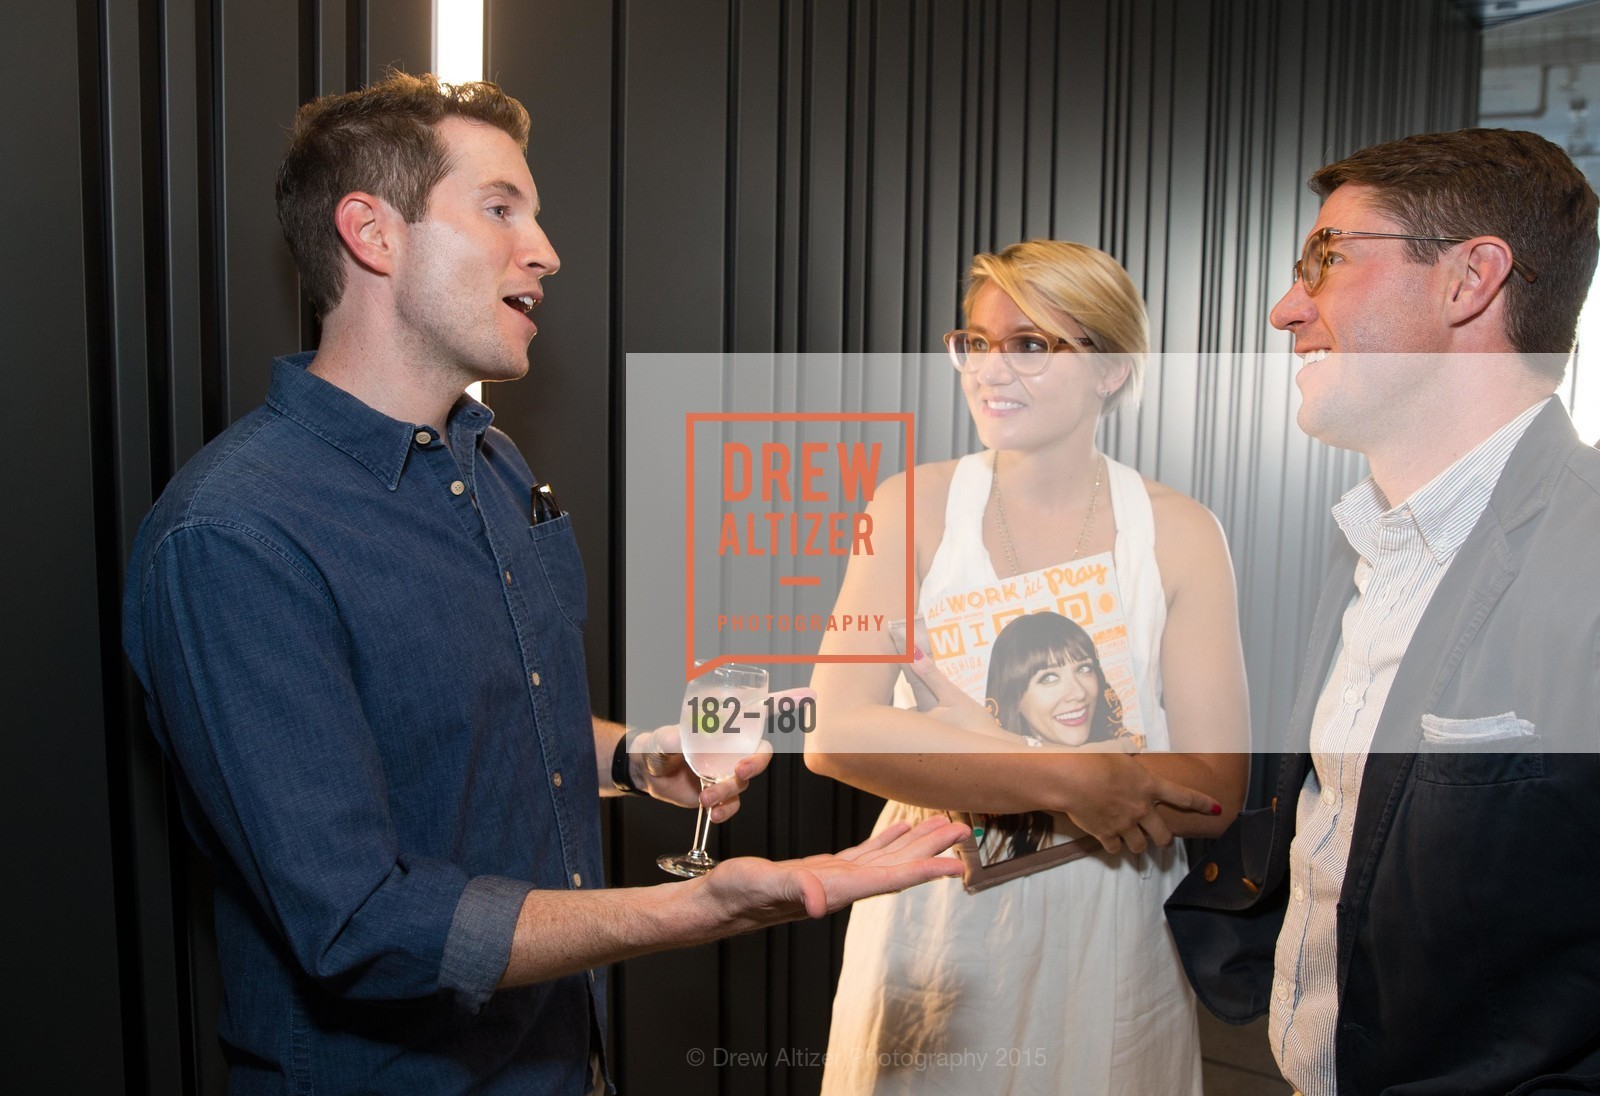 Scott Dadich, Wired Magazine July Cover Release Celebration at New Wired Office, Wired Magazine Offices. 520 3rd Street, June 24th, 2015,Drew Altizer, Drew Altizer Photography, full-service event agency, private events, San Francisco photographer, photographer California